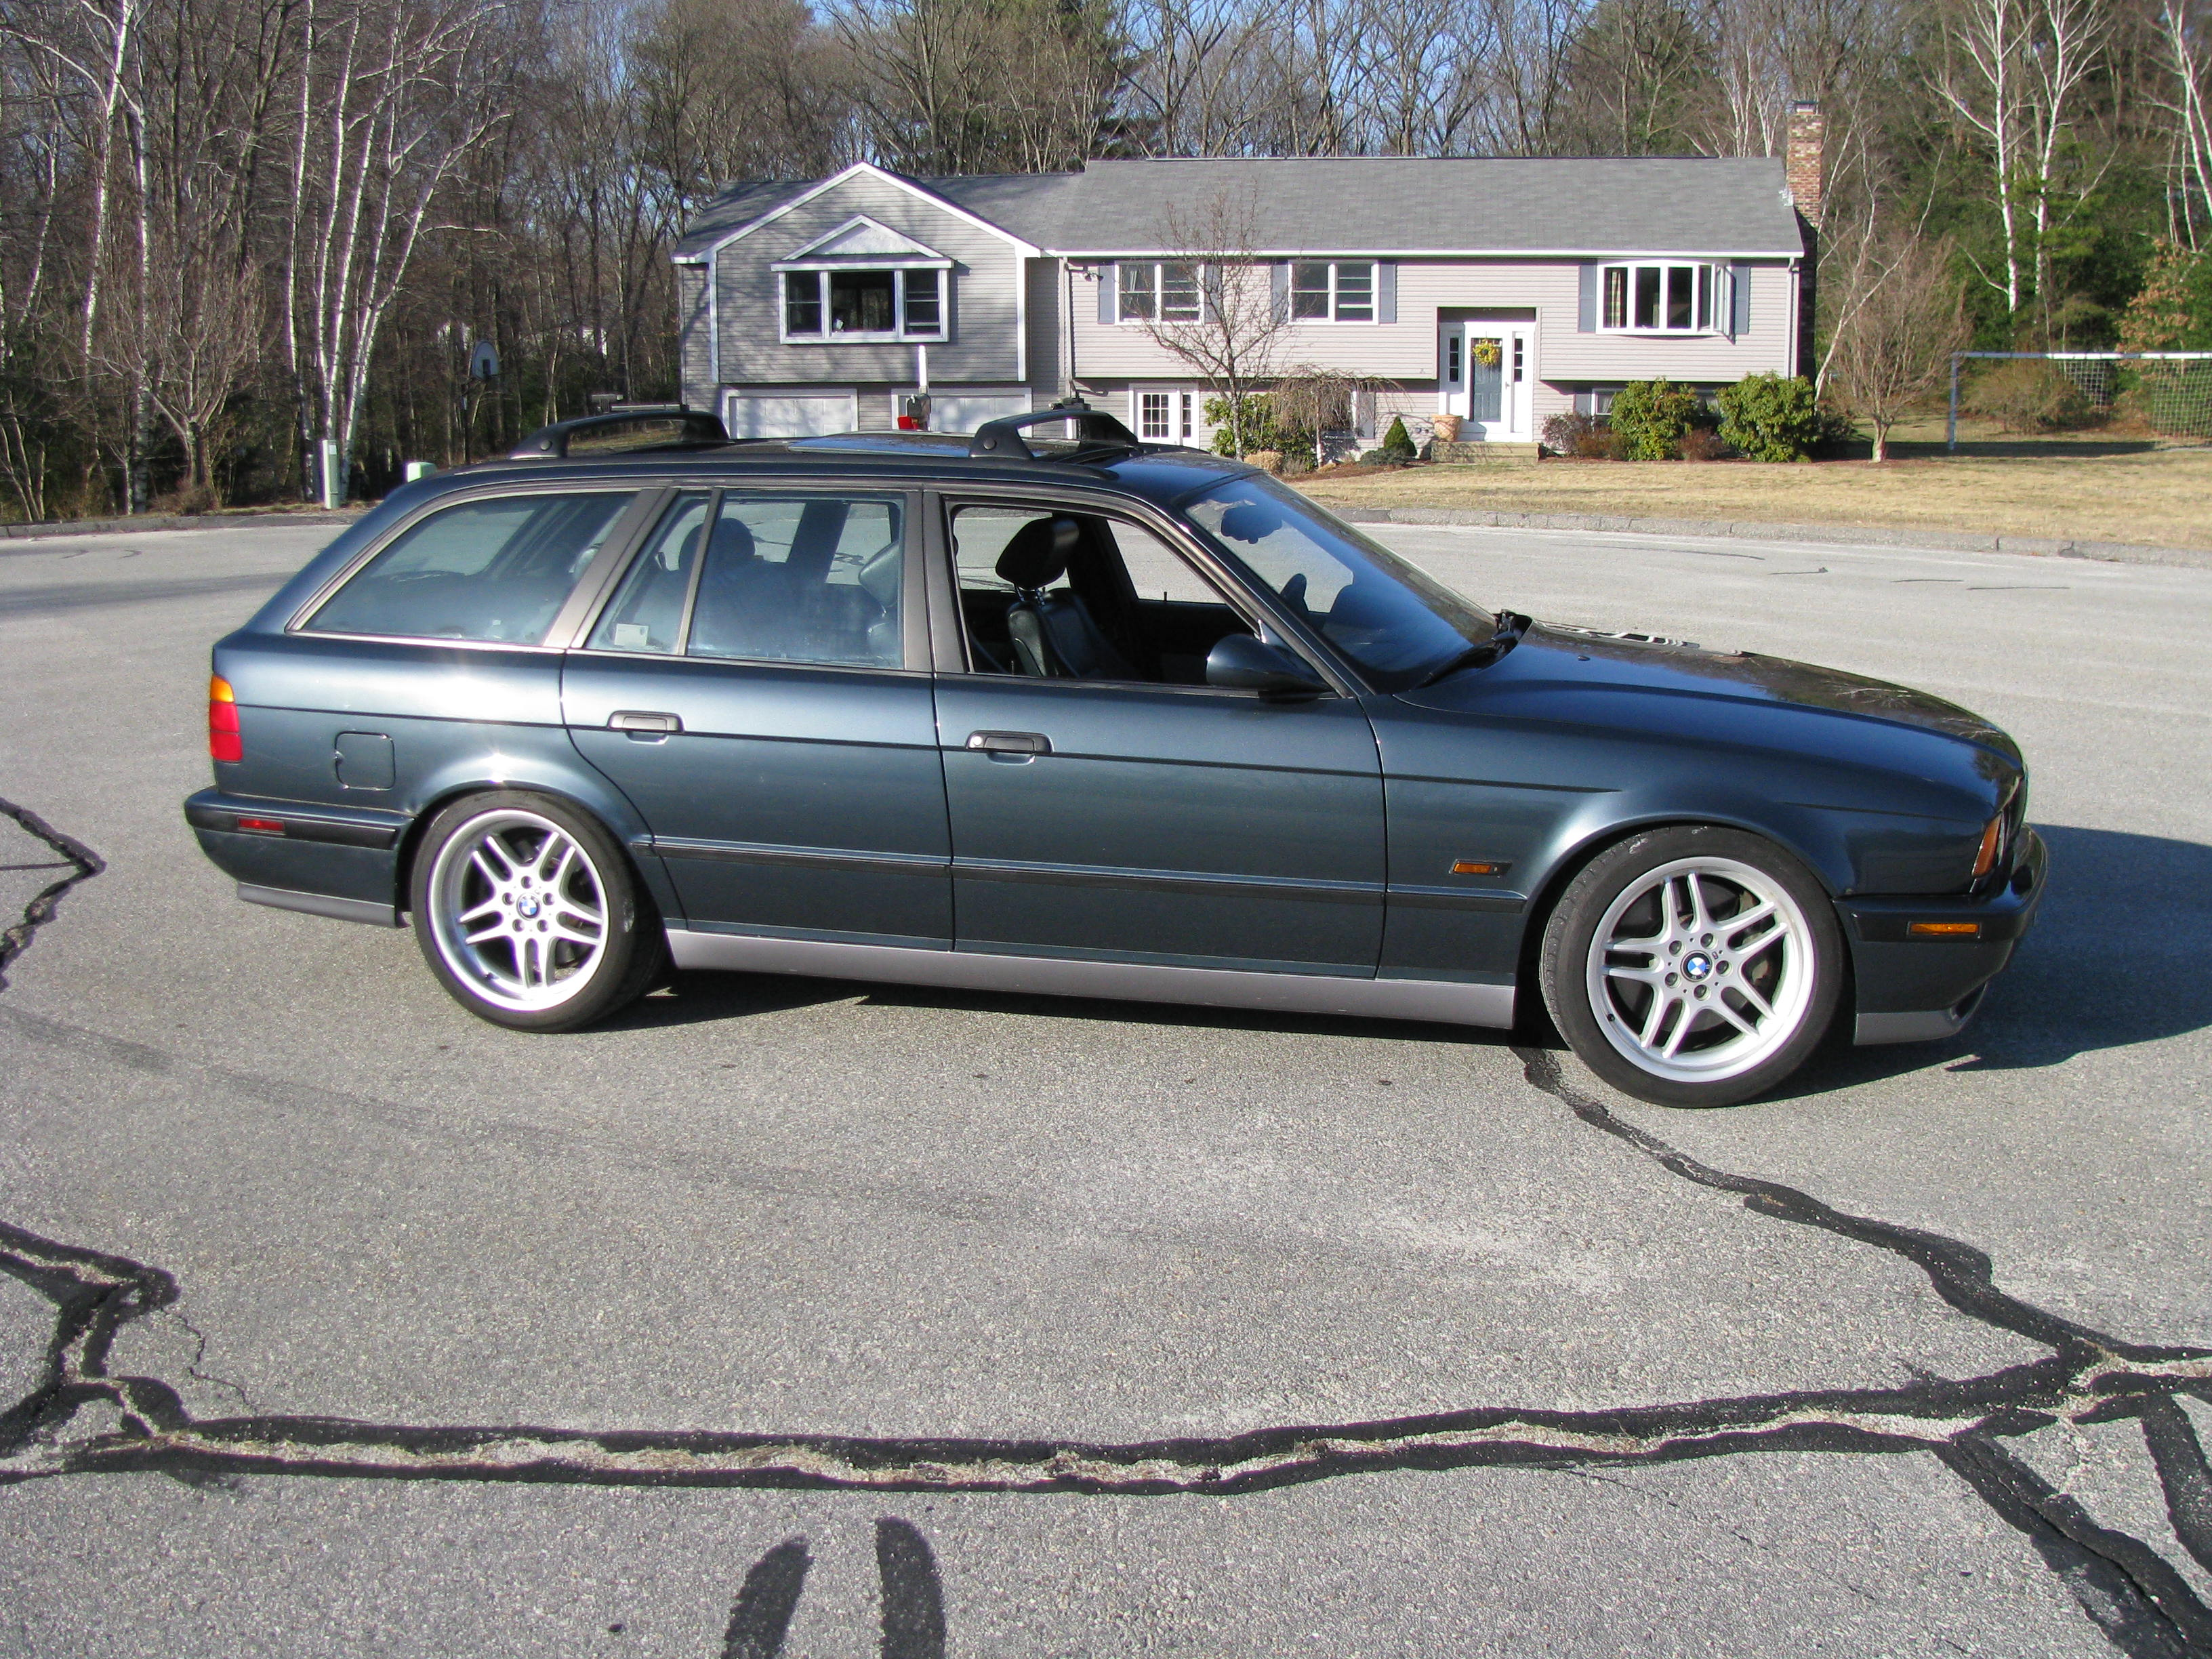 1995 Bmw M5 E34 Touring Wagon Supercharged German Cars For Sale Blog